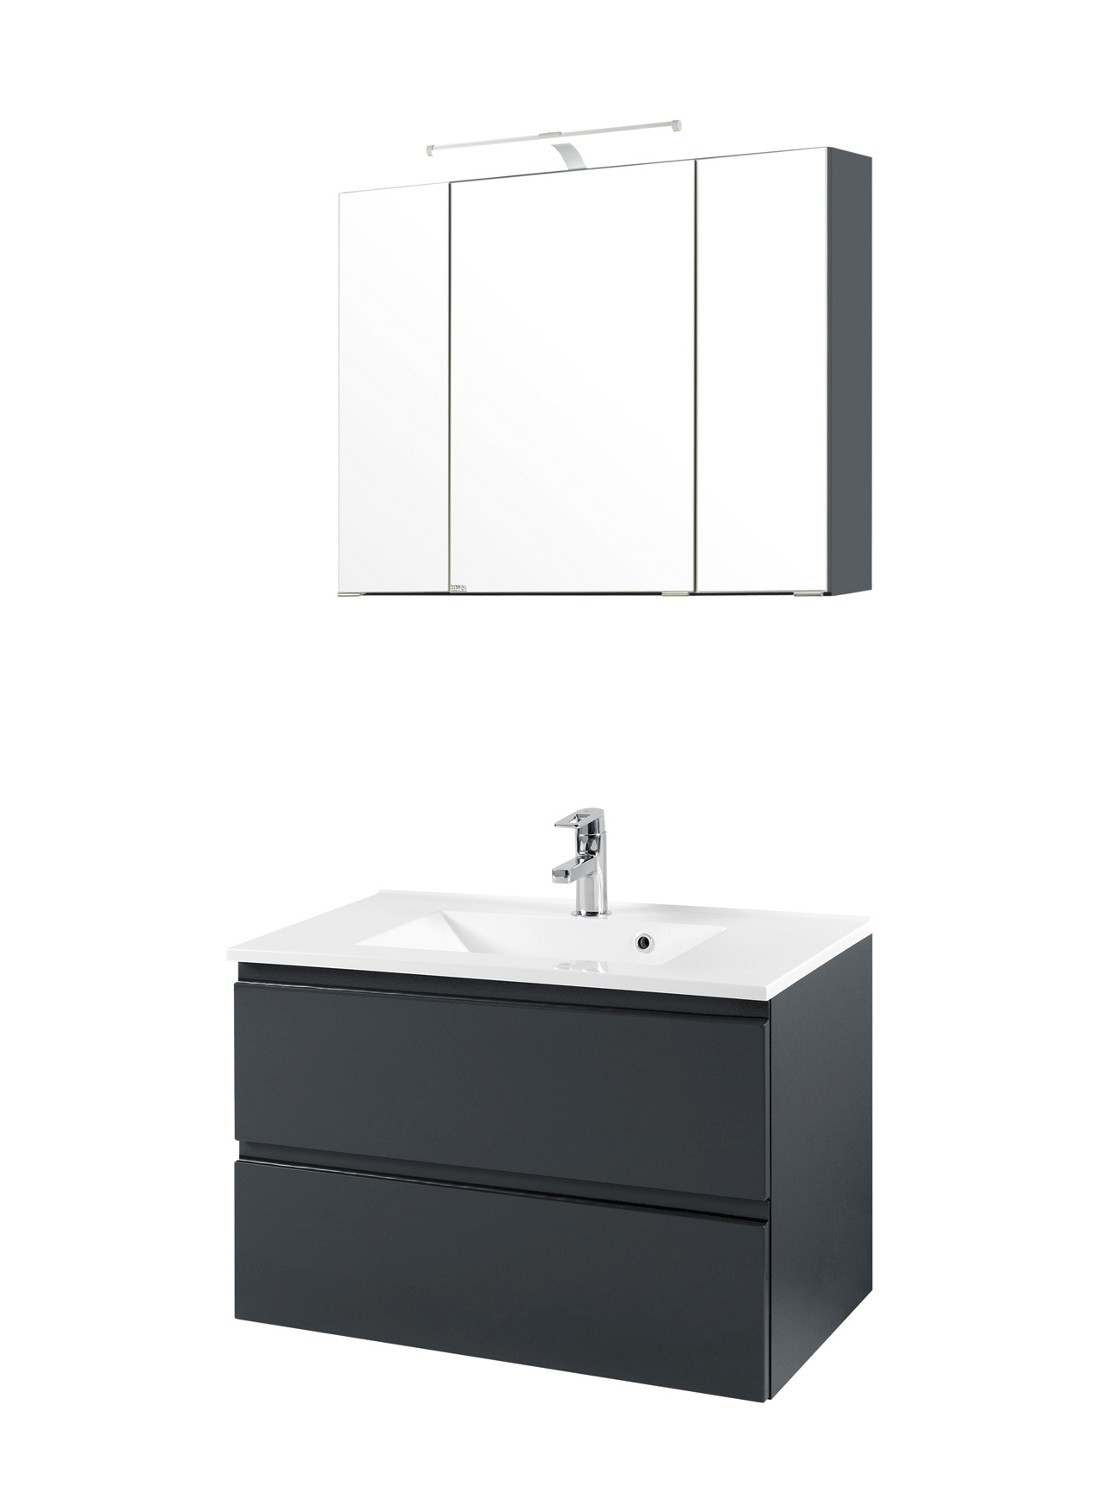 badm belset cardiff waschtisch mit becken spiegelschrank 80 cm grau ebay. Black Bedroom Furniture Sets. Home Design Ideas